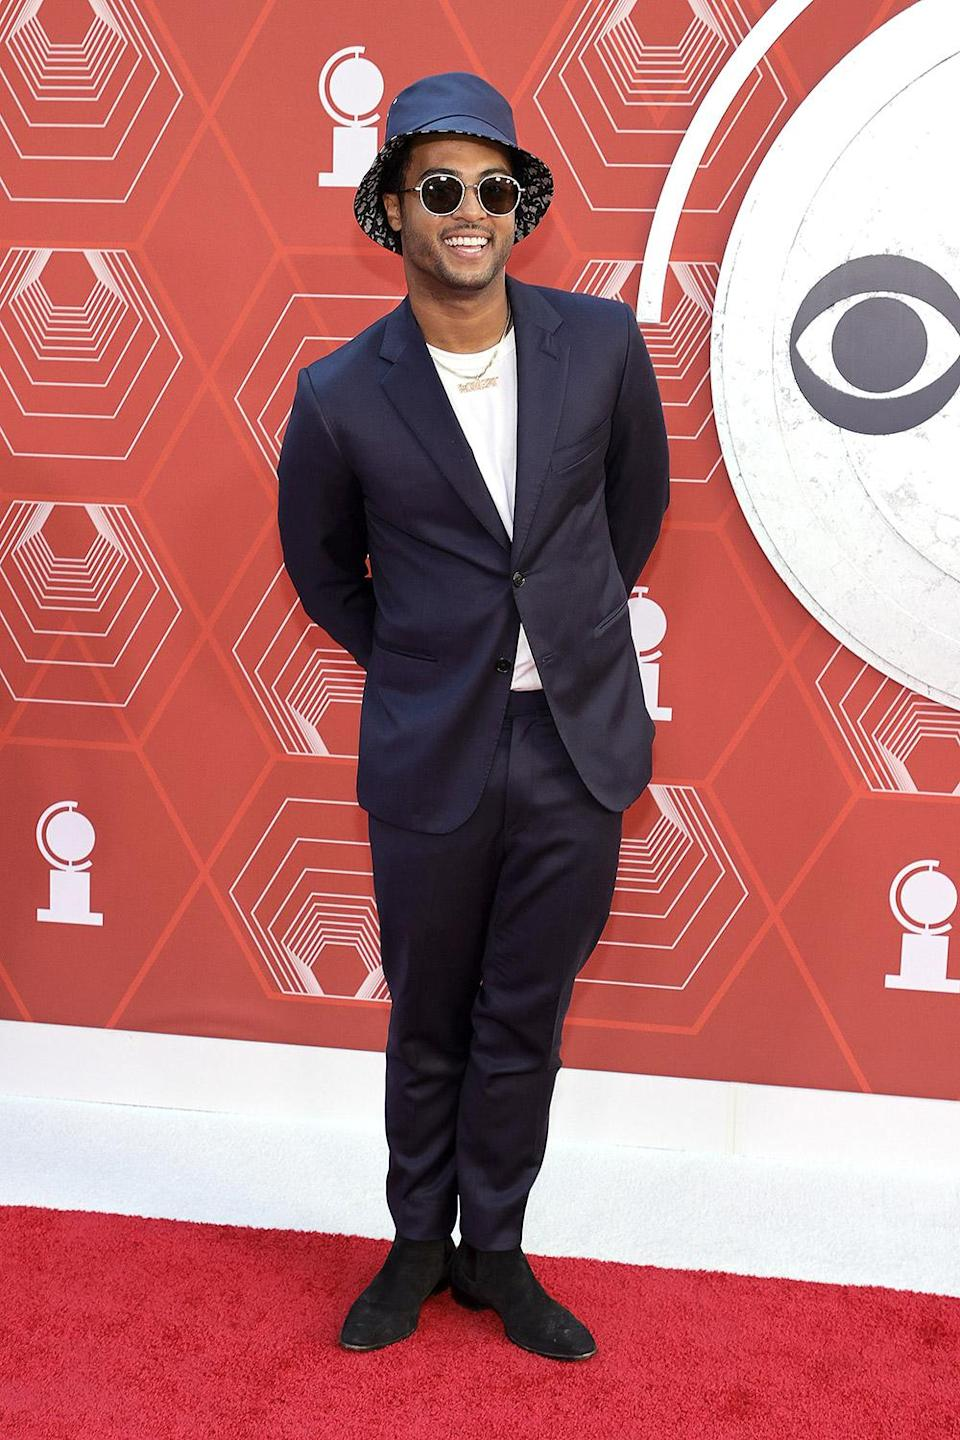 <p>Bobby Wooten III wears a navy suit, matching bucket hat and sunglass on the red carpet. </p>